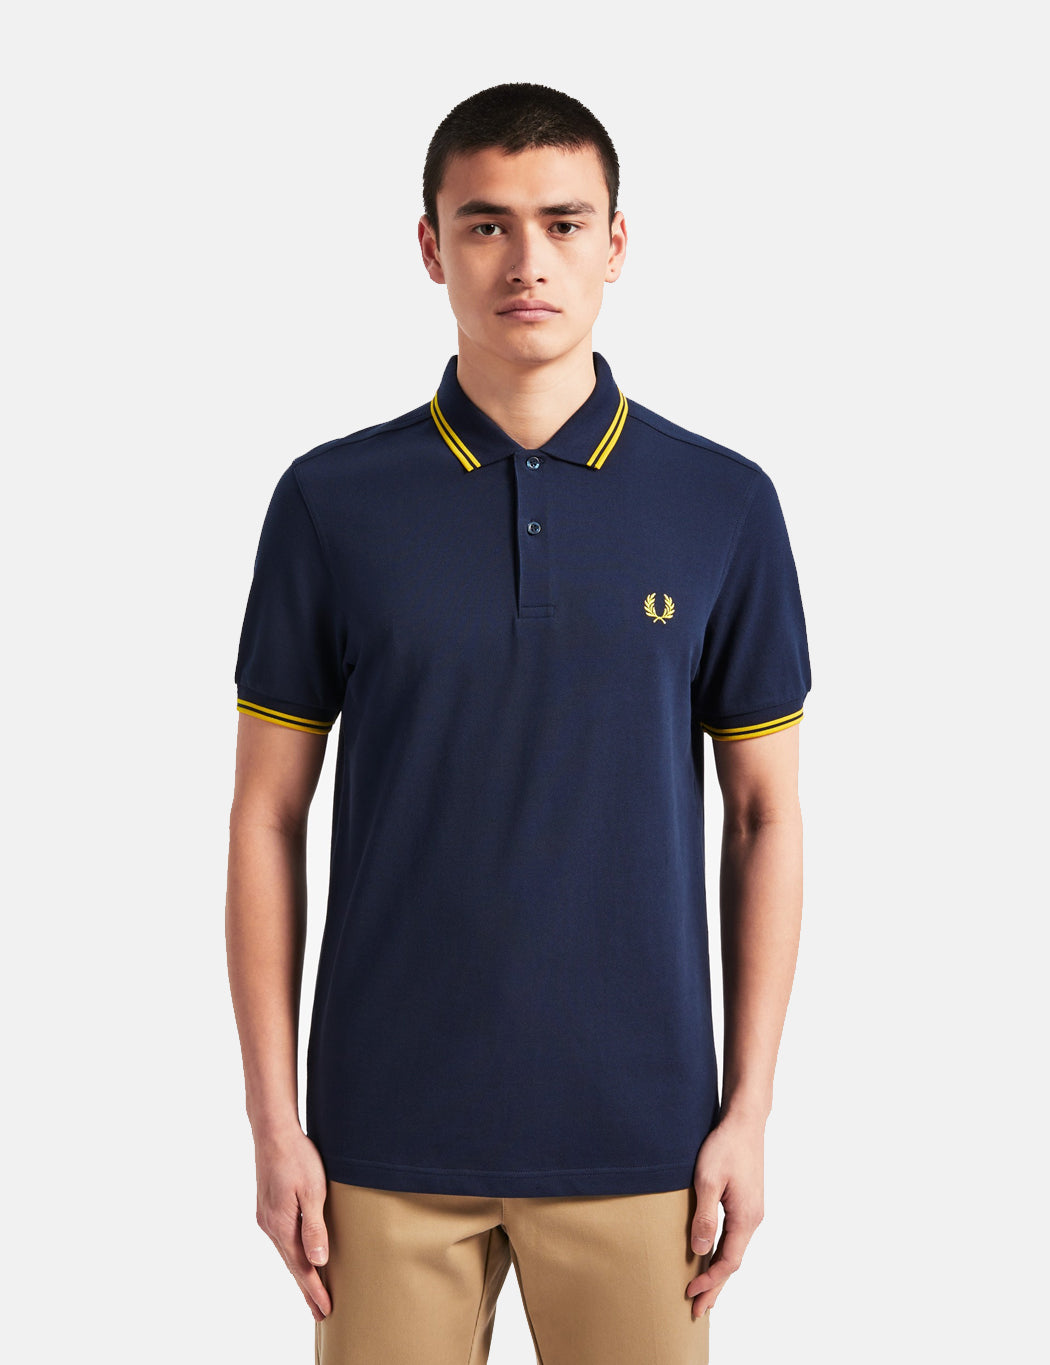 Fred Perry Twin Tipped Polo Shirt - Carbon Blue   URBAN EXCESS.